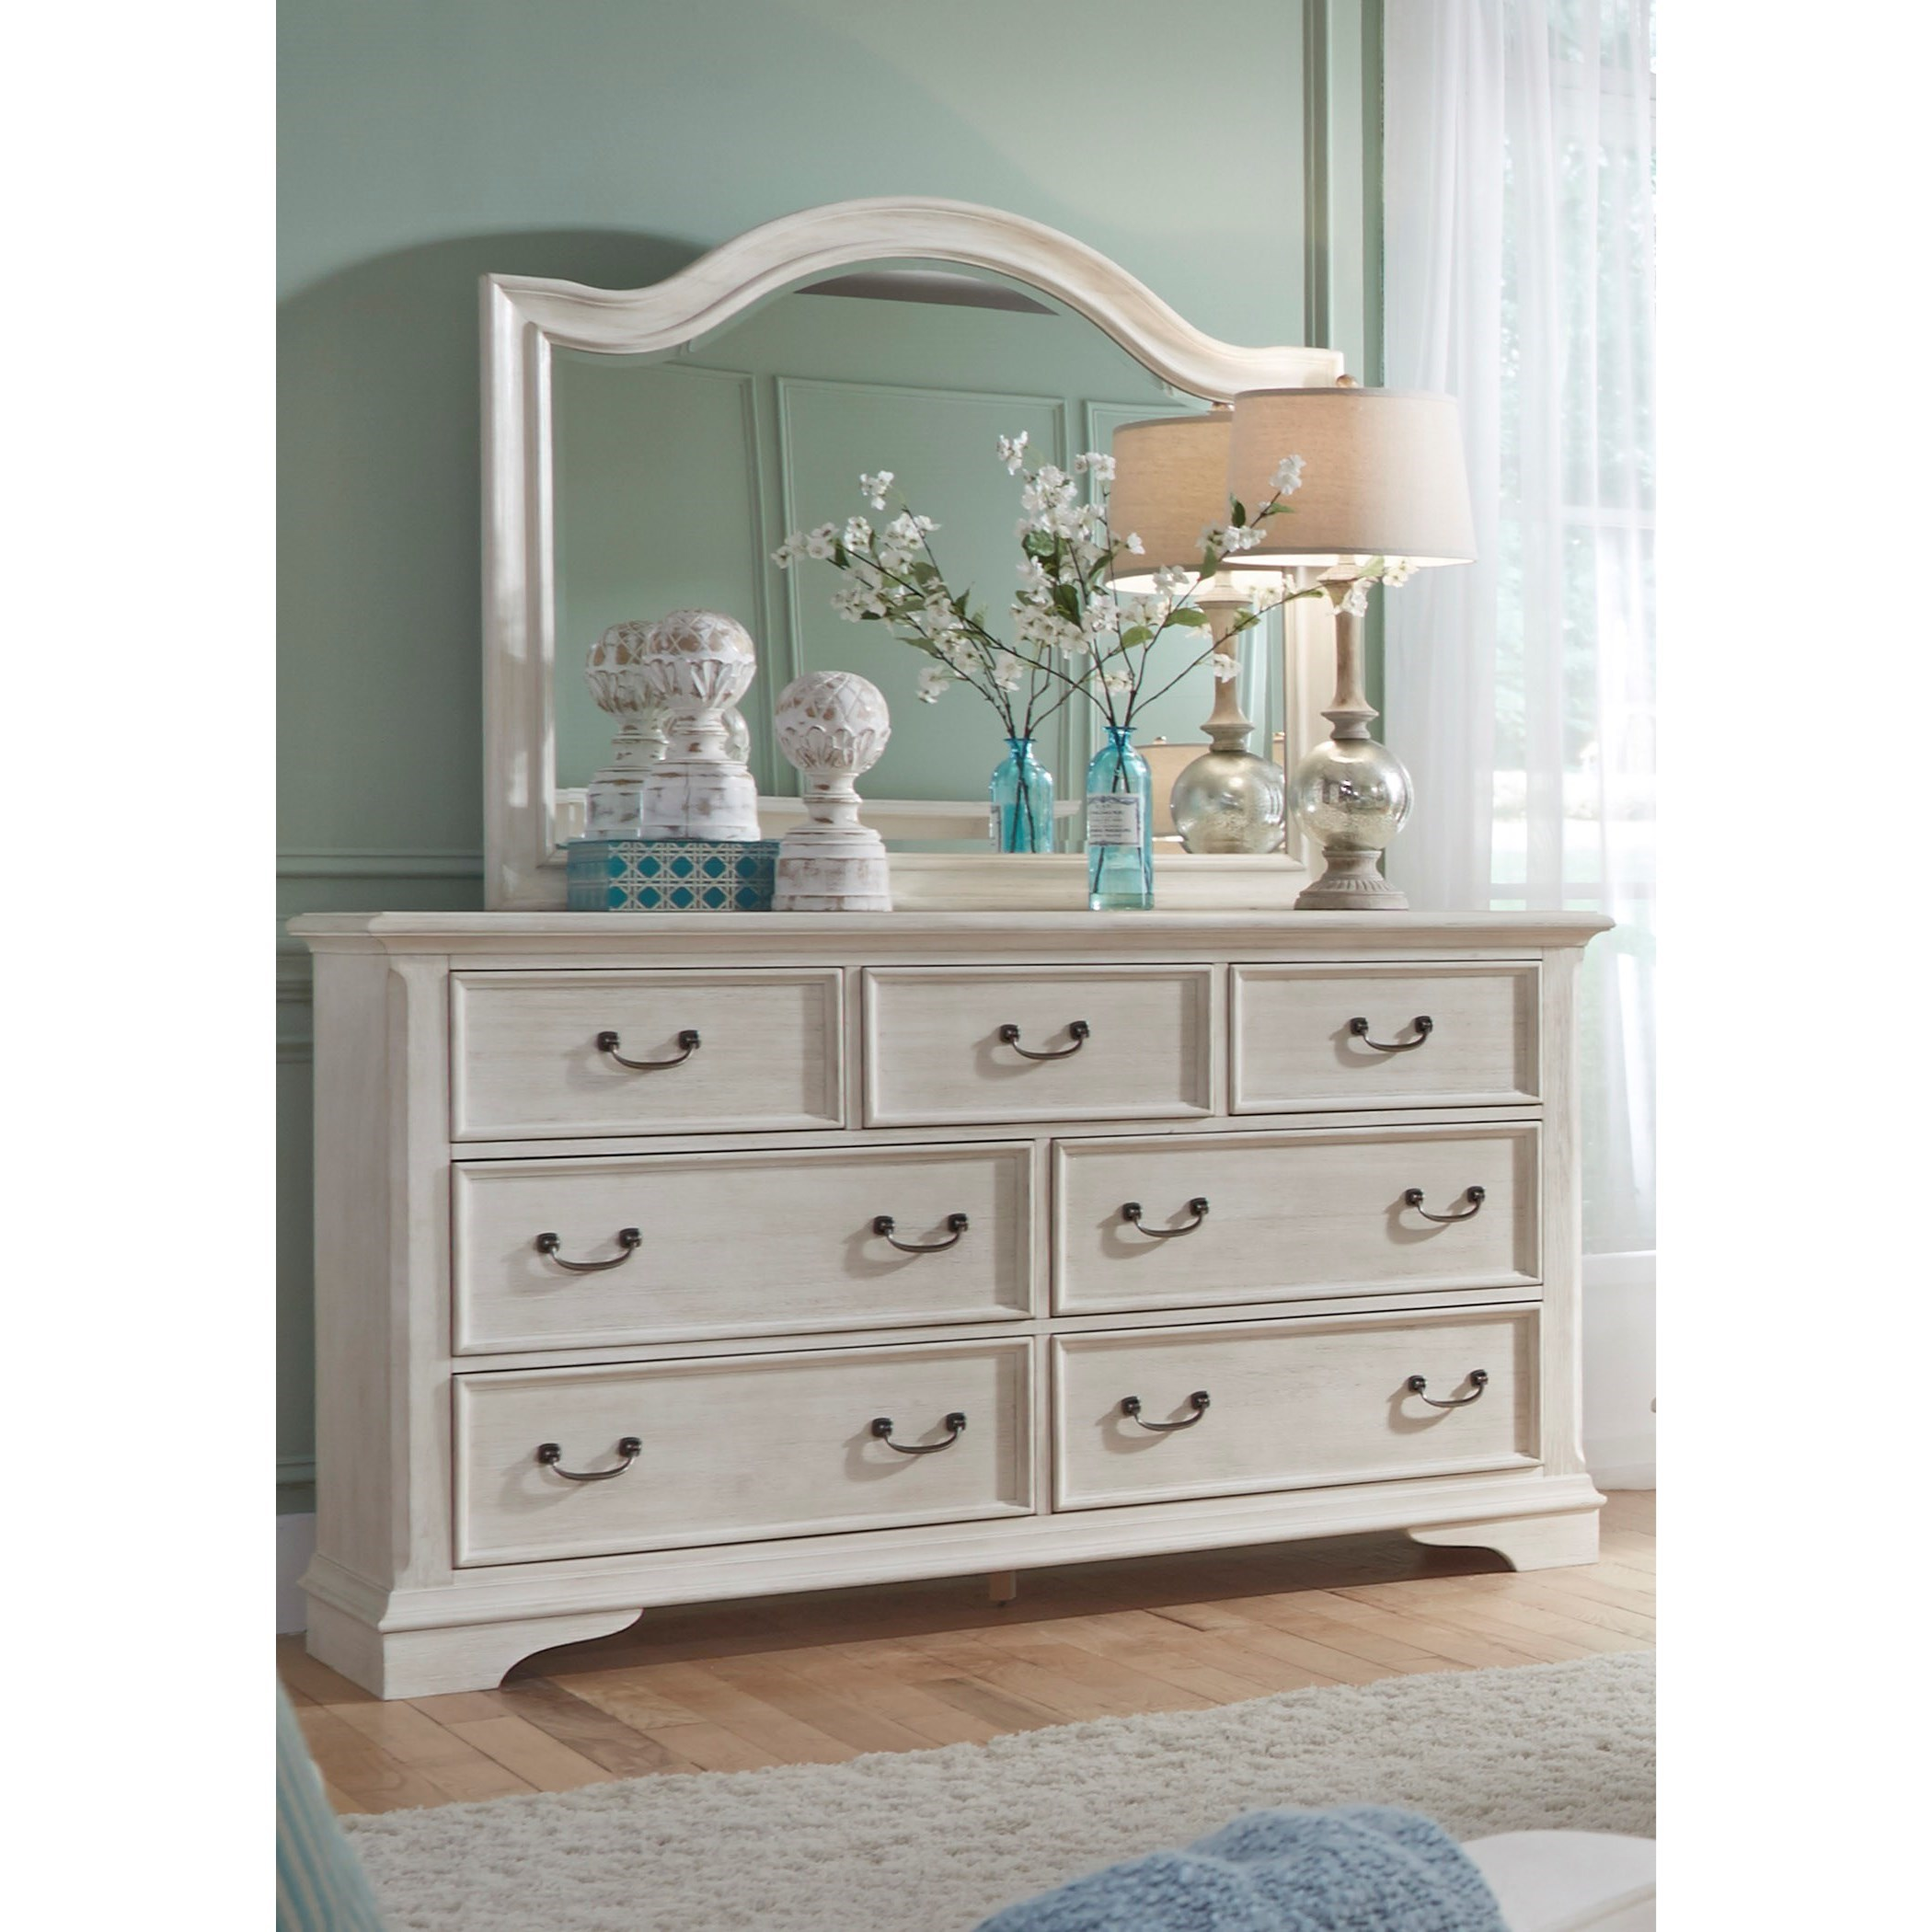 Liberty Furniture Bayside Bedroom Dresser & Mirror  - Item Number: 249-BR-DM